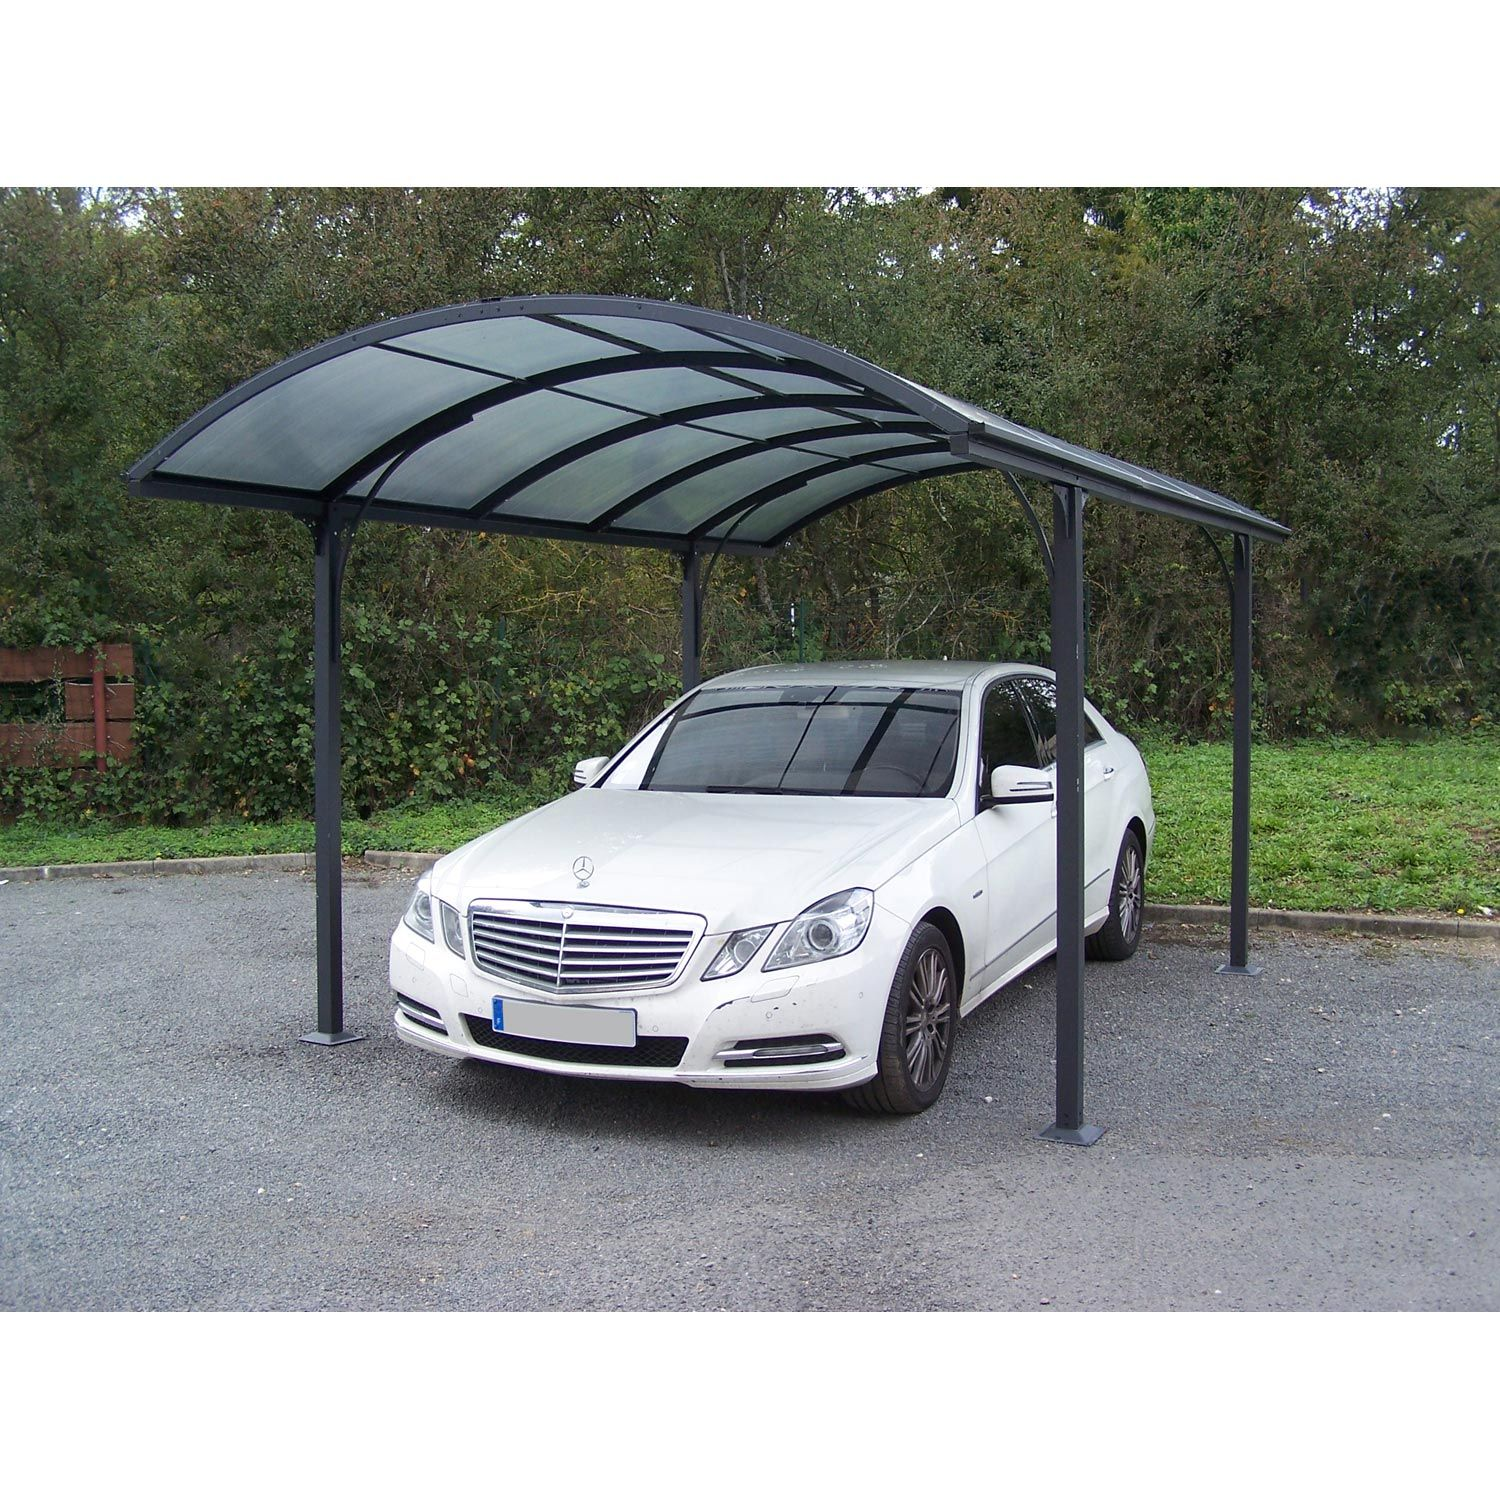 Carport Alu HABRITA Car 3048 alrp 14.62 m² Long.485 x